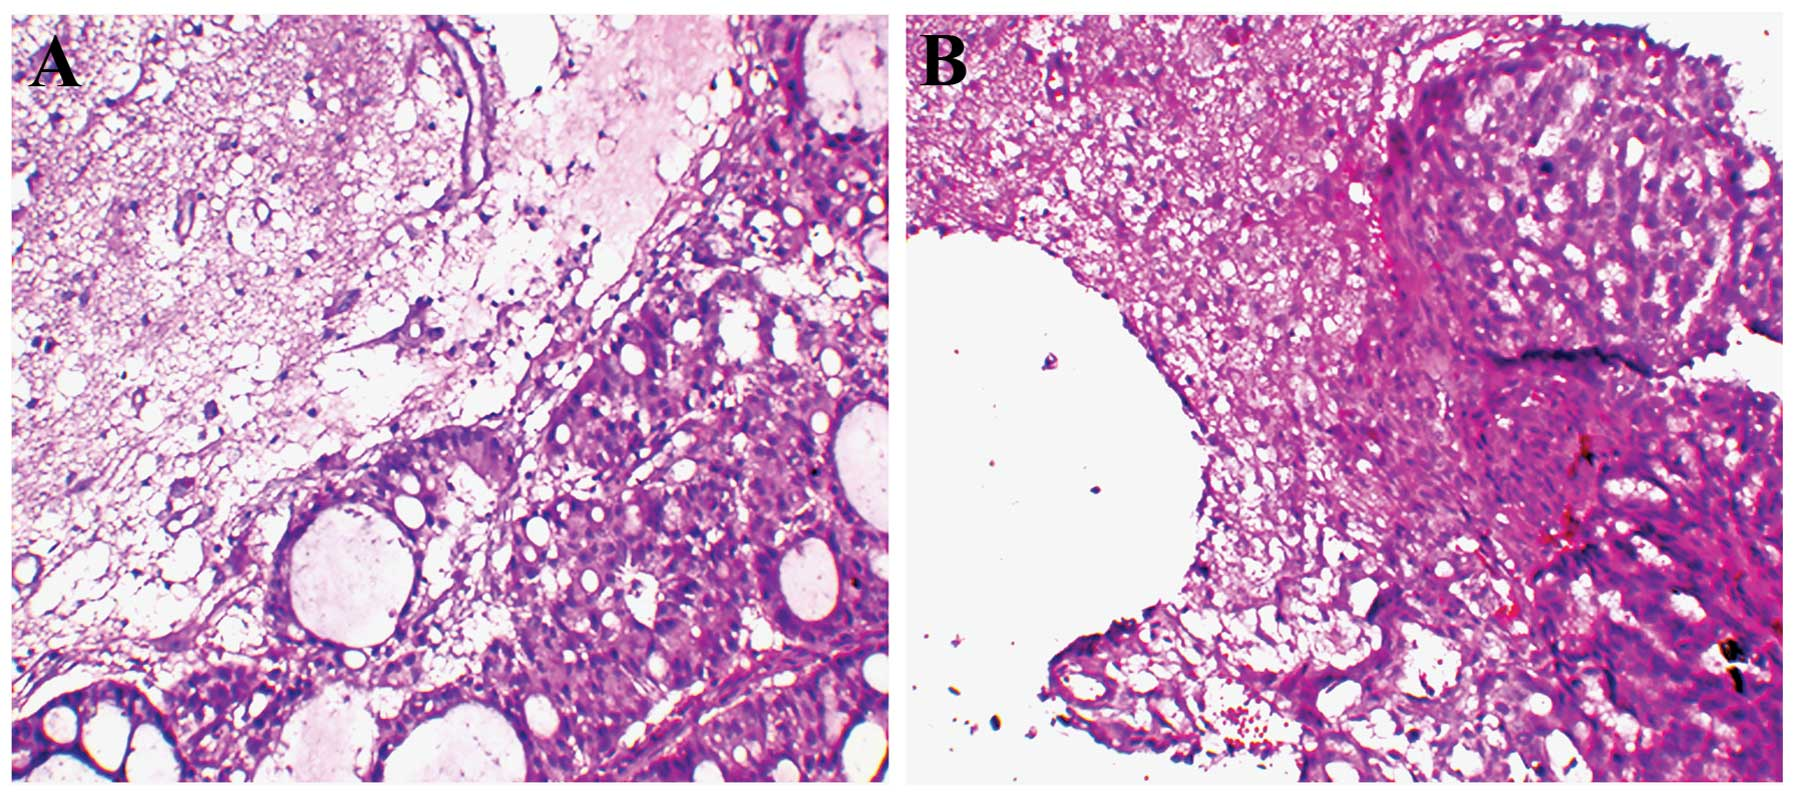 Overexpression of adenylate cyclase associated protein 1 may predict hematoxylin and eosin he staining of histological tissues he in brain metastasis of non small cell lung cancer nsclc patients ccuart Gallery